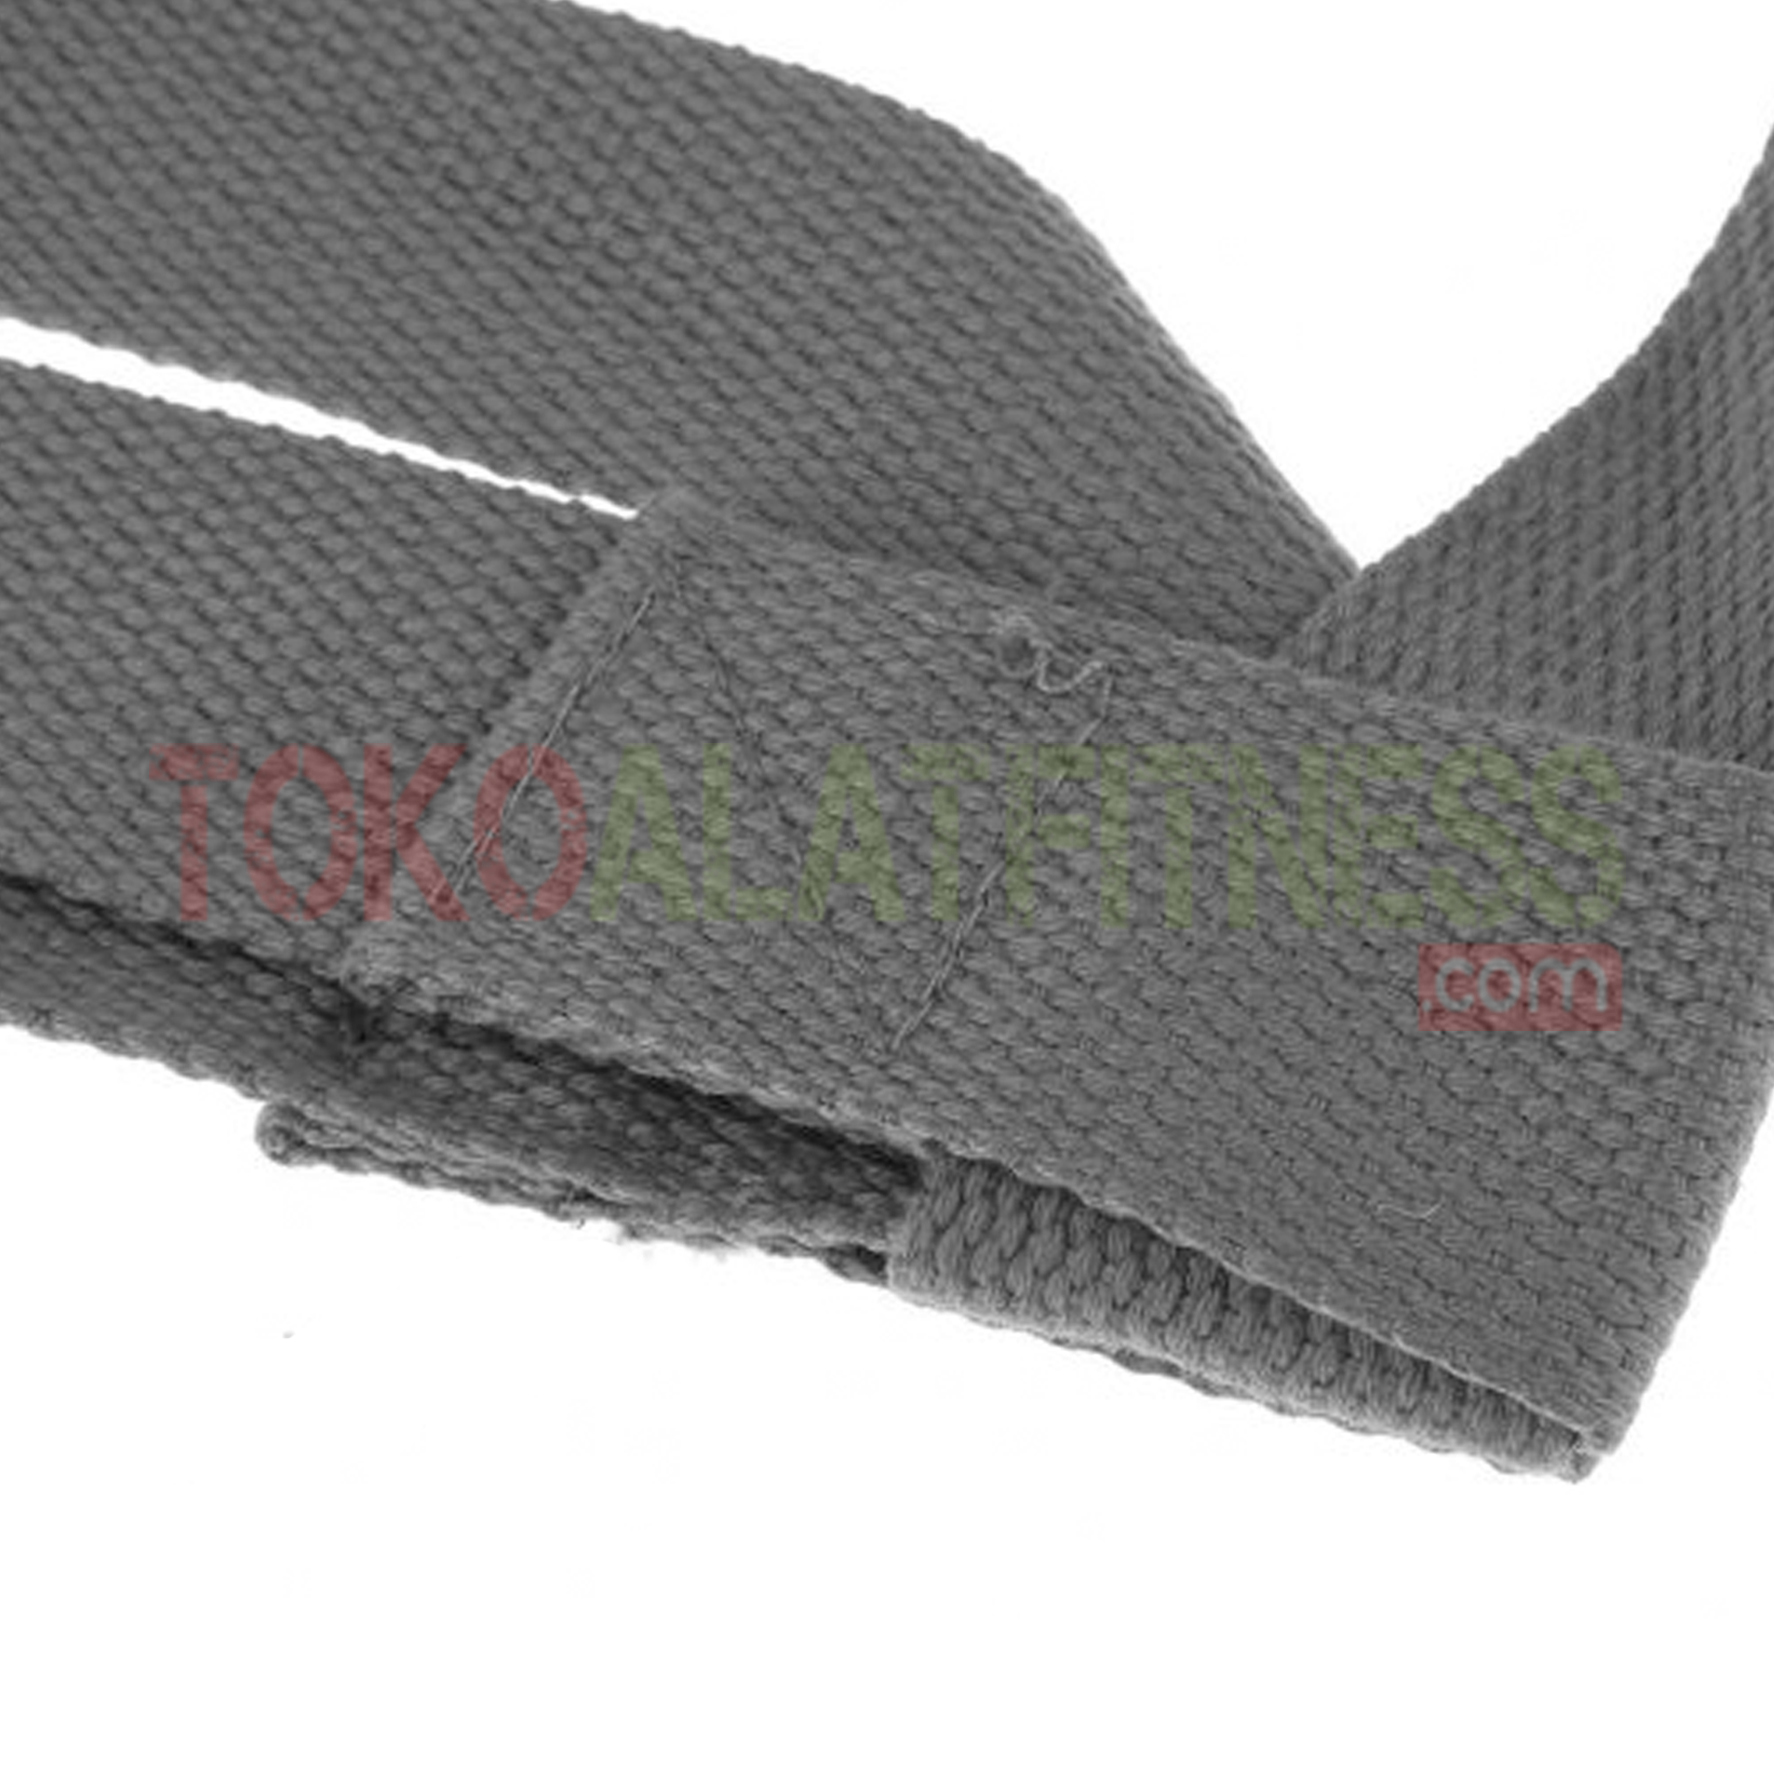 YOGA MAT STRAP GREY 4 WTM - Yoga Mat Strap, Grey Body Gym